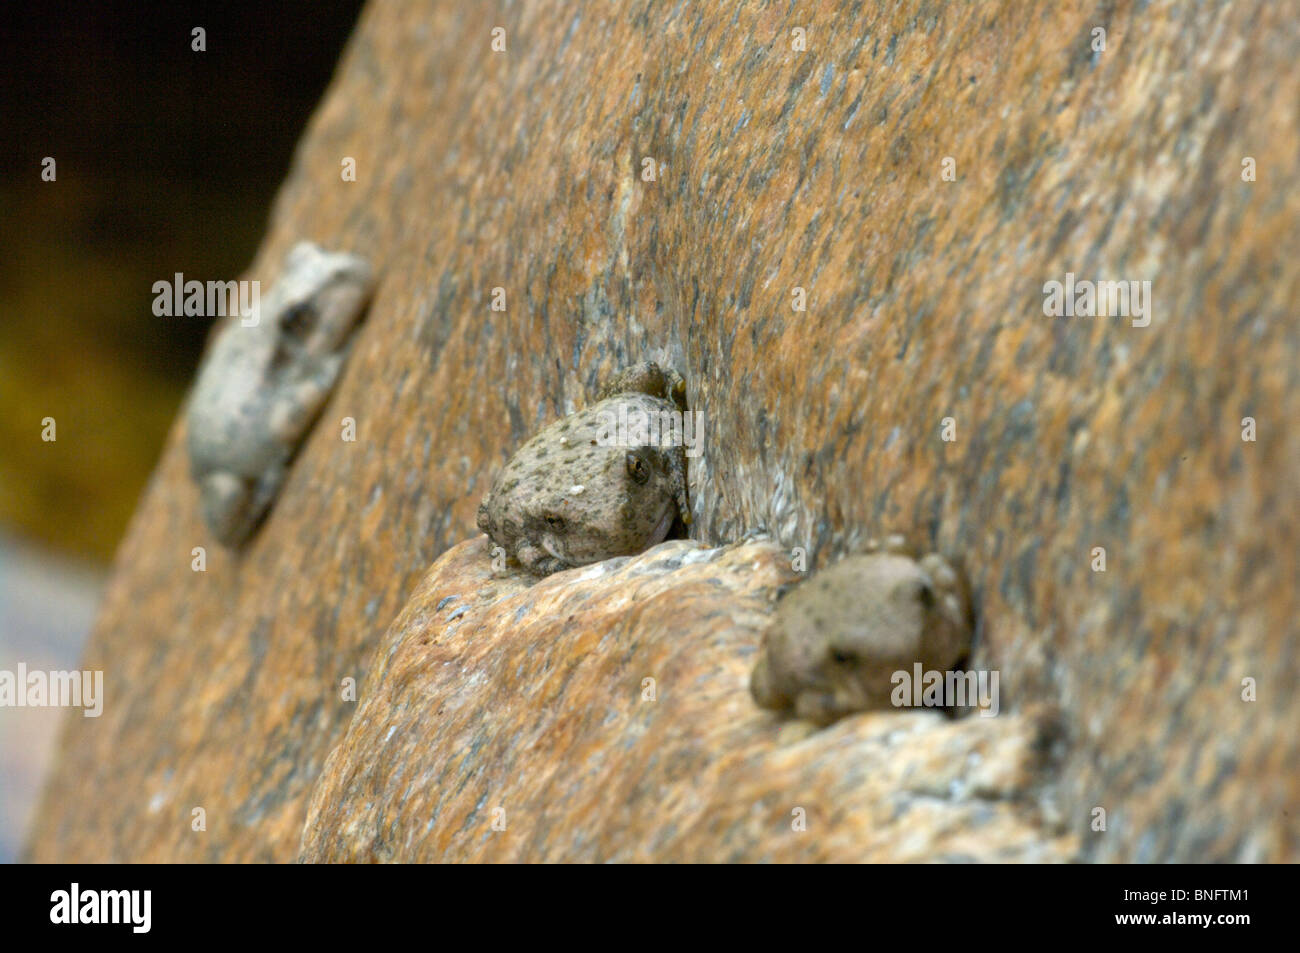 Three Canyon Treefrogs (Hyla arenicolor) sleeping by day on a granite boulder in Sabino Canyon, Tucson, Arizona. - Stock Image